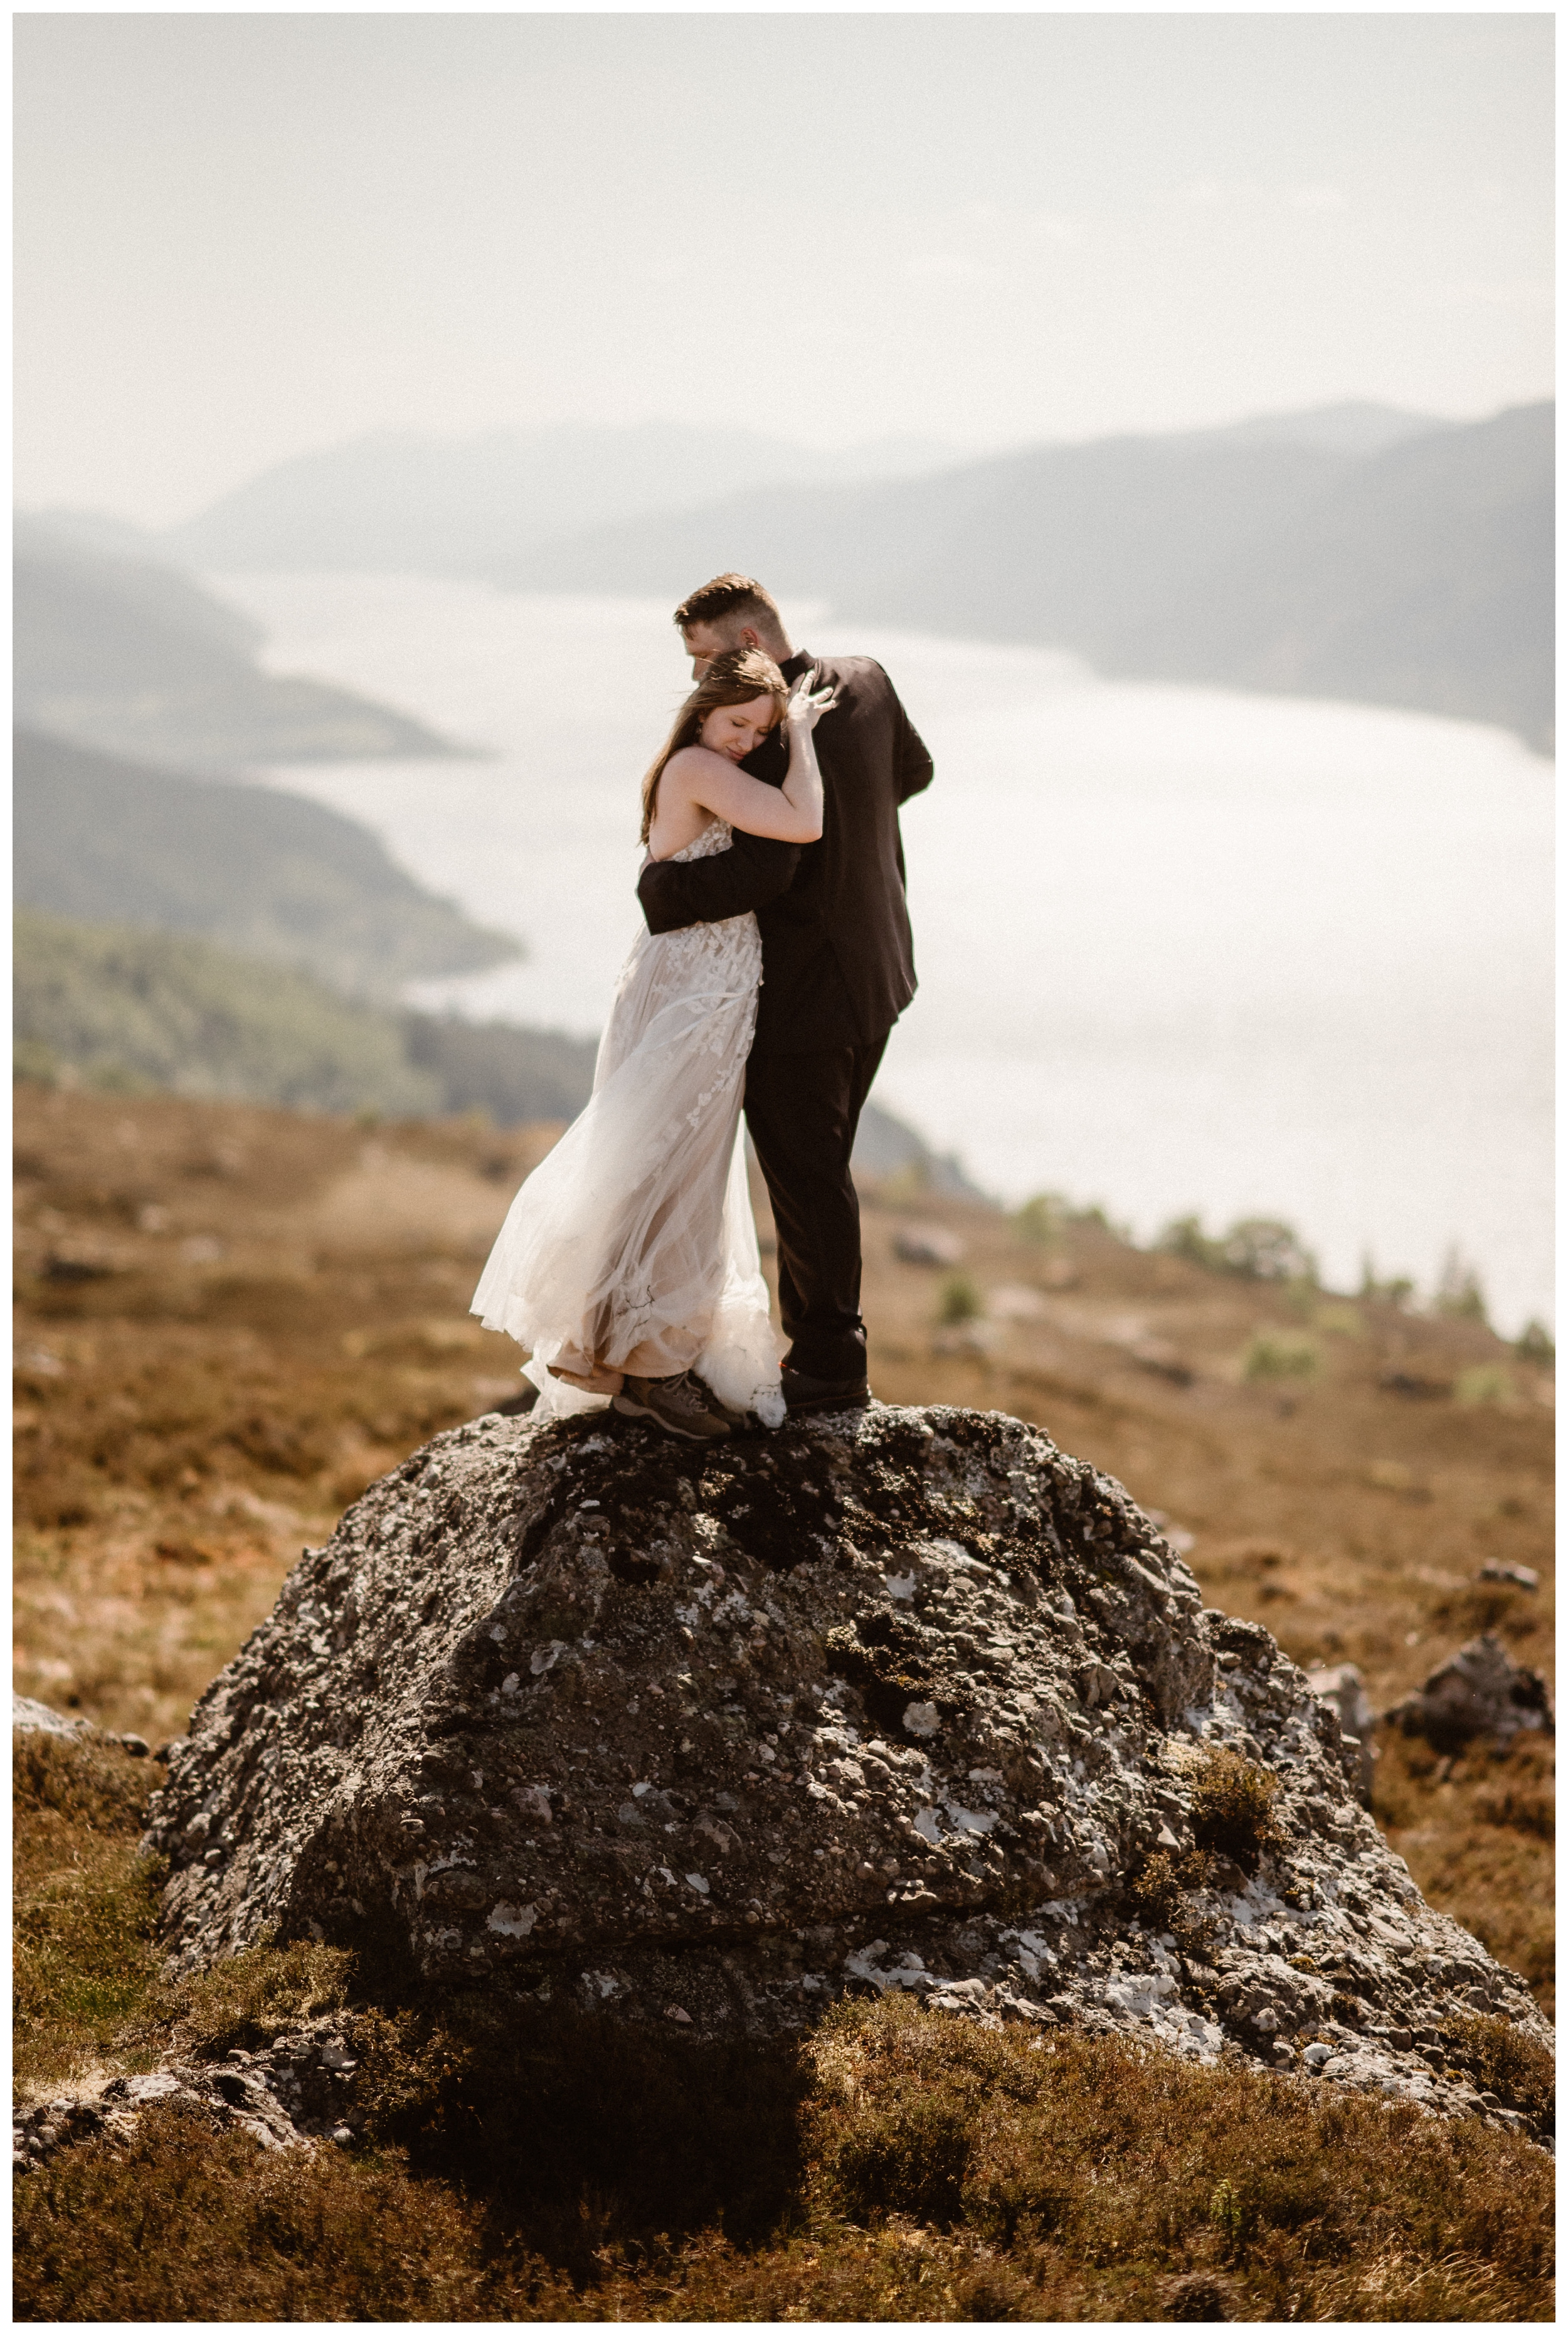 Elissa and Daniel stand on a rock overlooking the north shores of Loch Ness in the Scottish Highlands. We could nearly make out Urquhart Castle during the photos for their destination elopement. Photo by Maddie Mae, Adventure Instead.